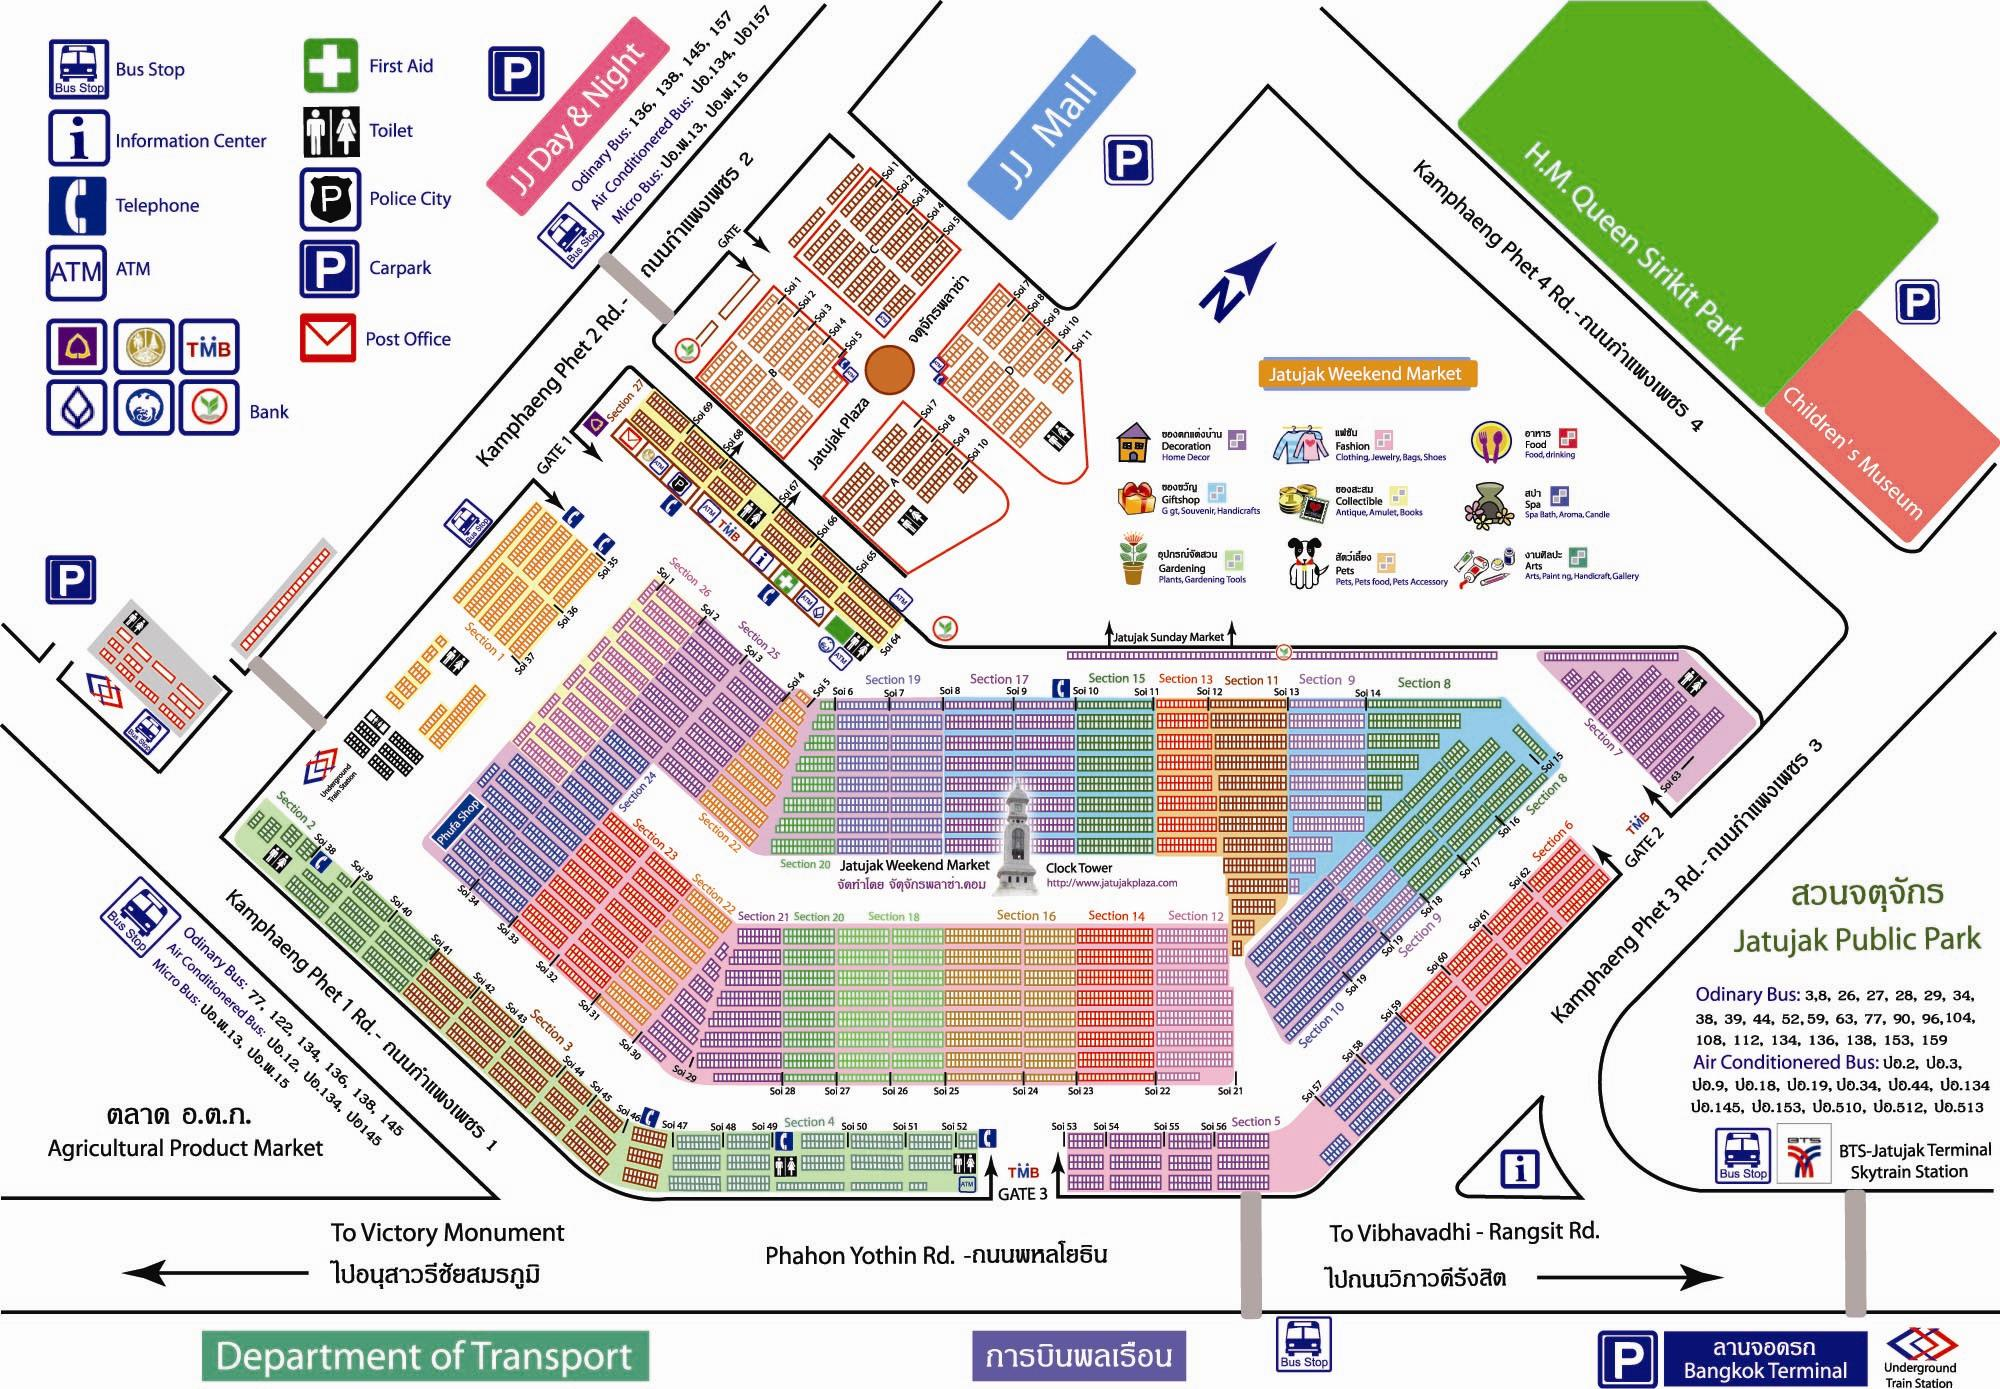 A map of the Chattuchak Markets in Bangkok.